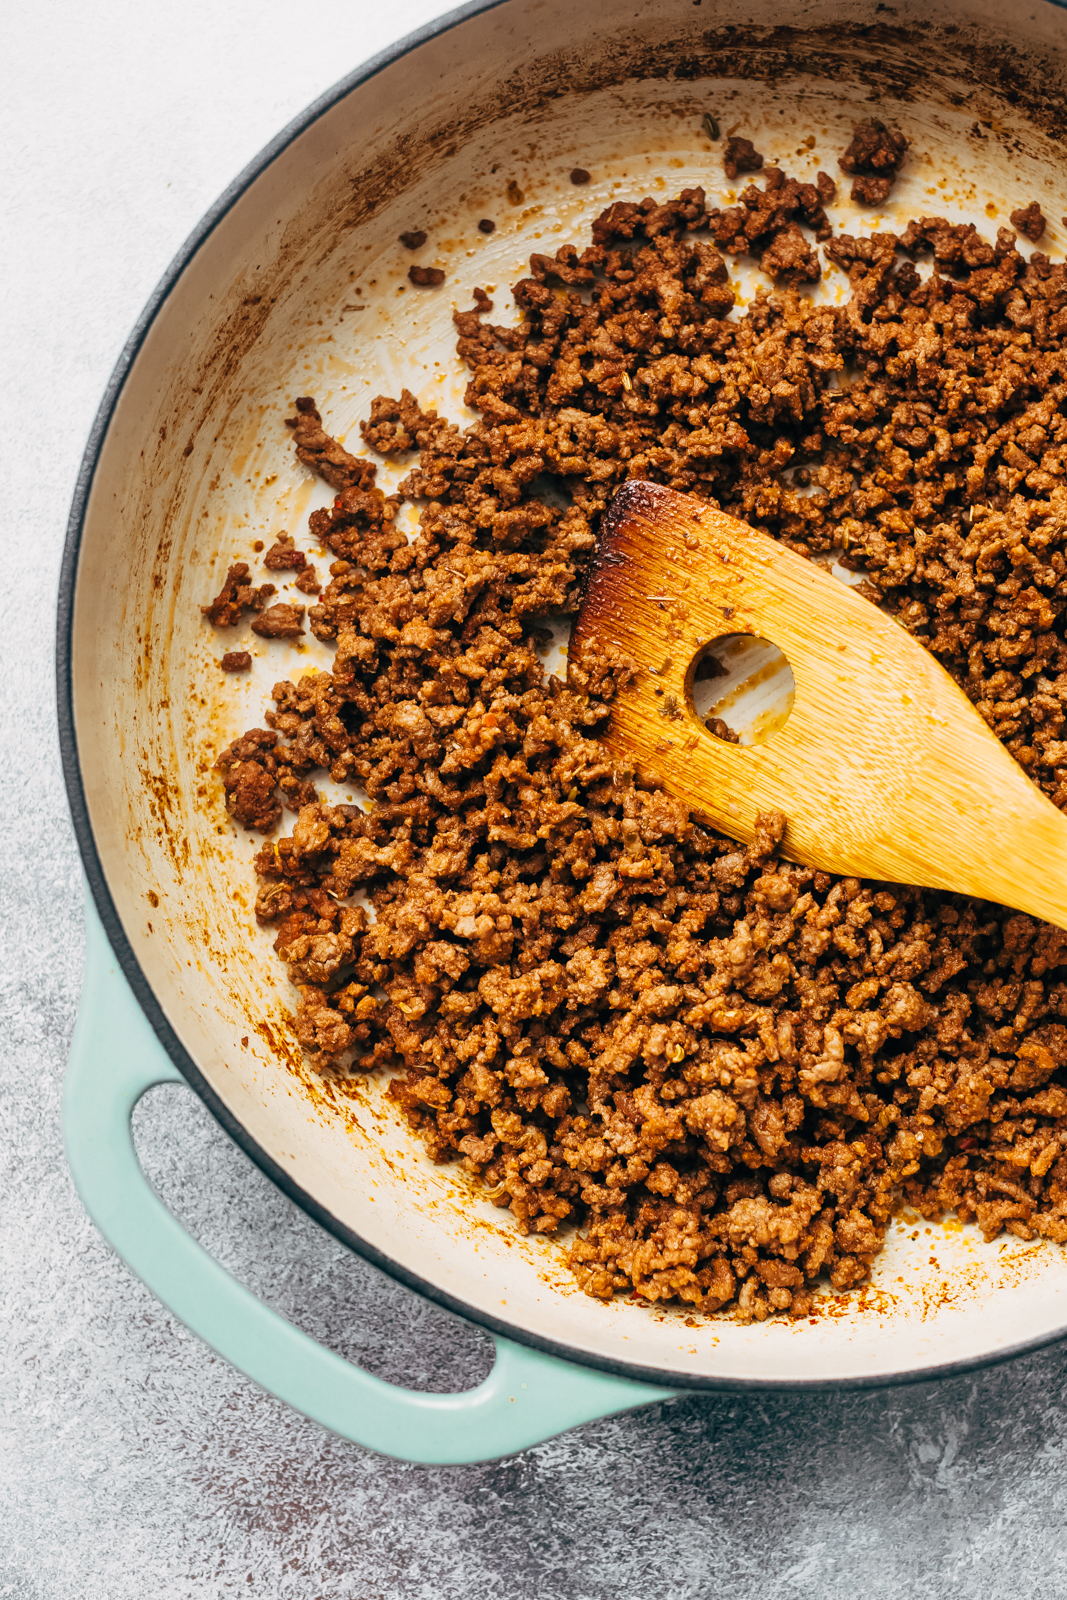 Ground beef mixture in cast iron dish with wooden spoon